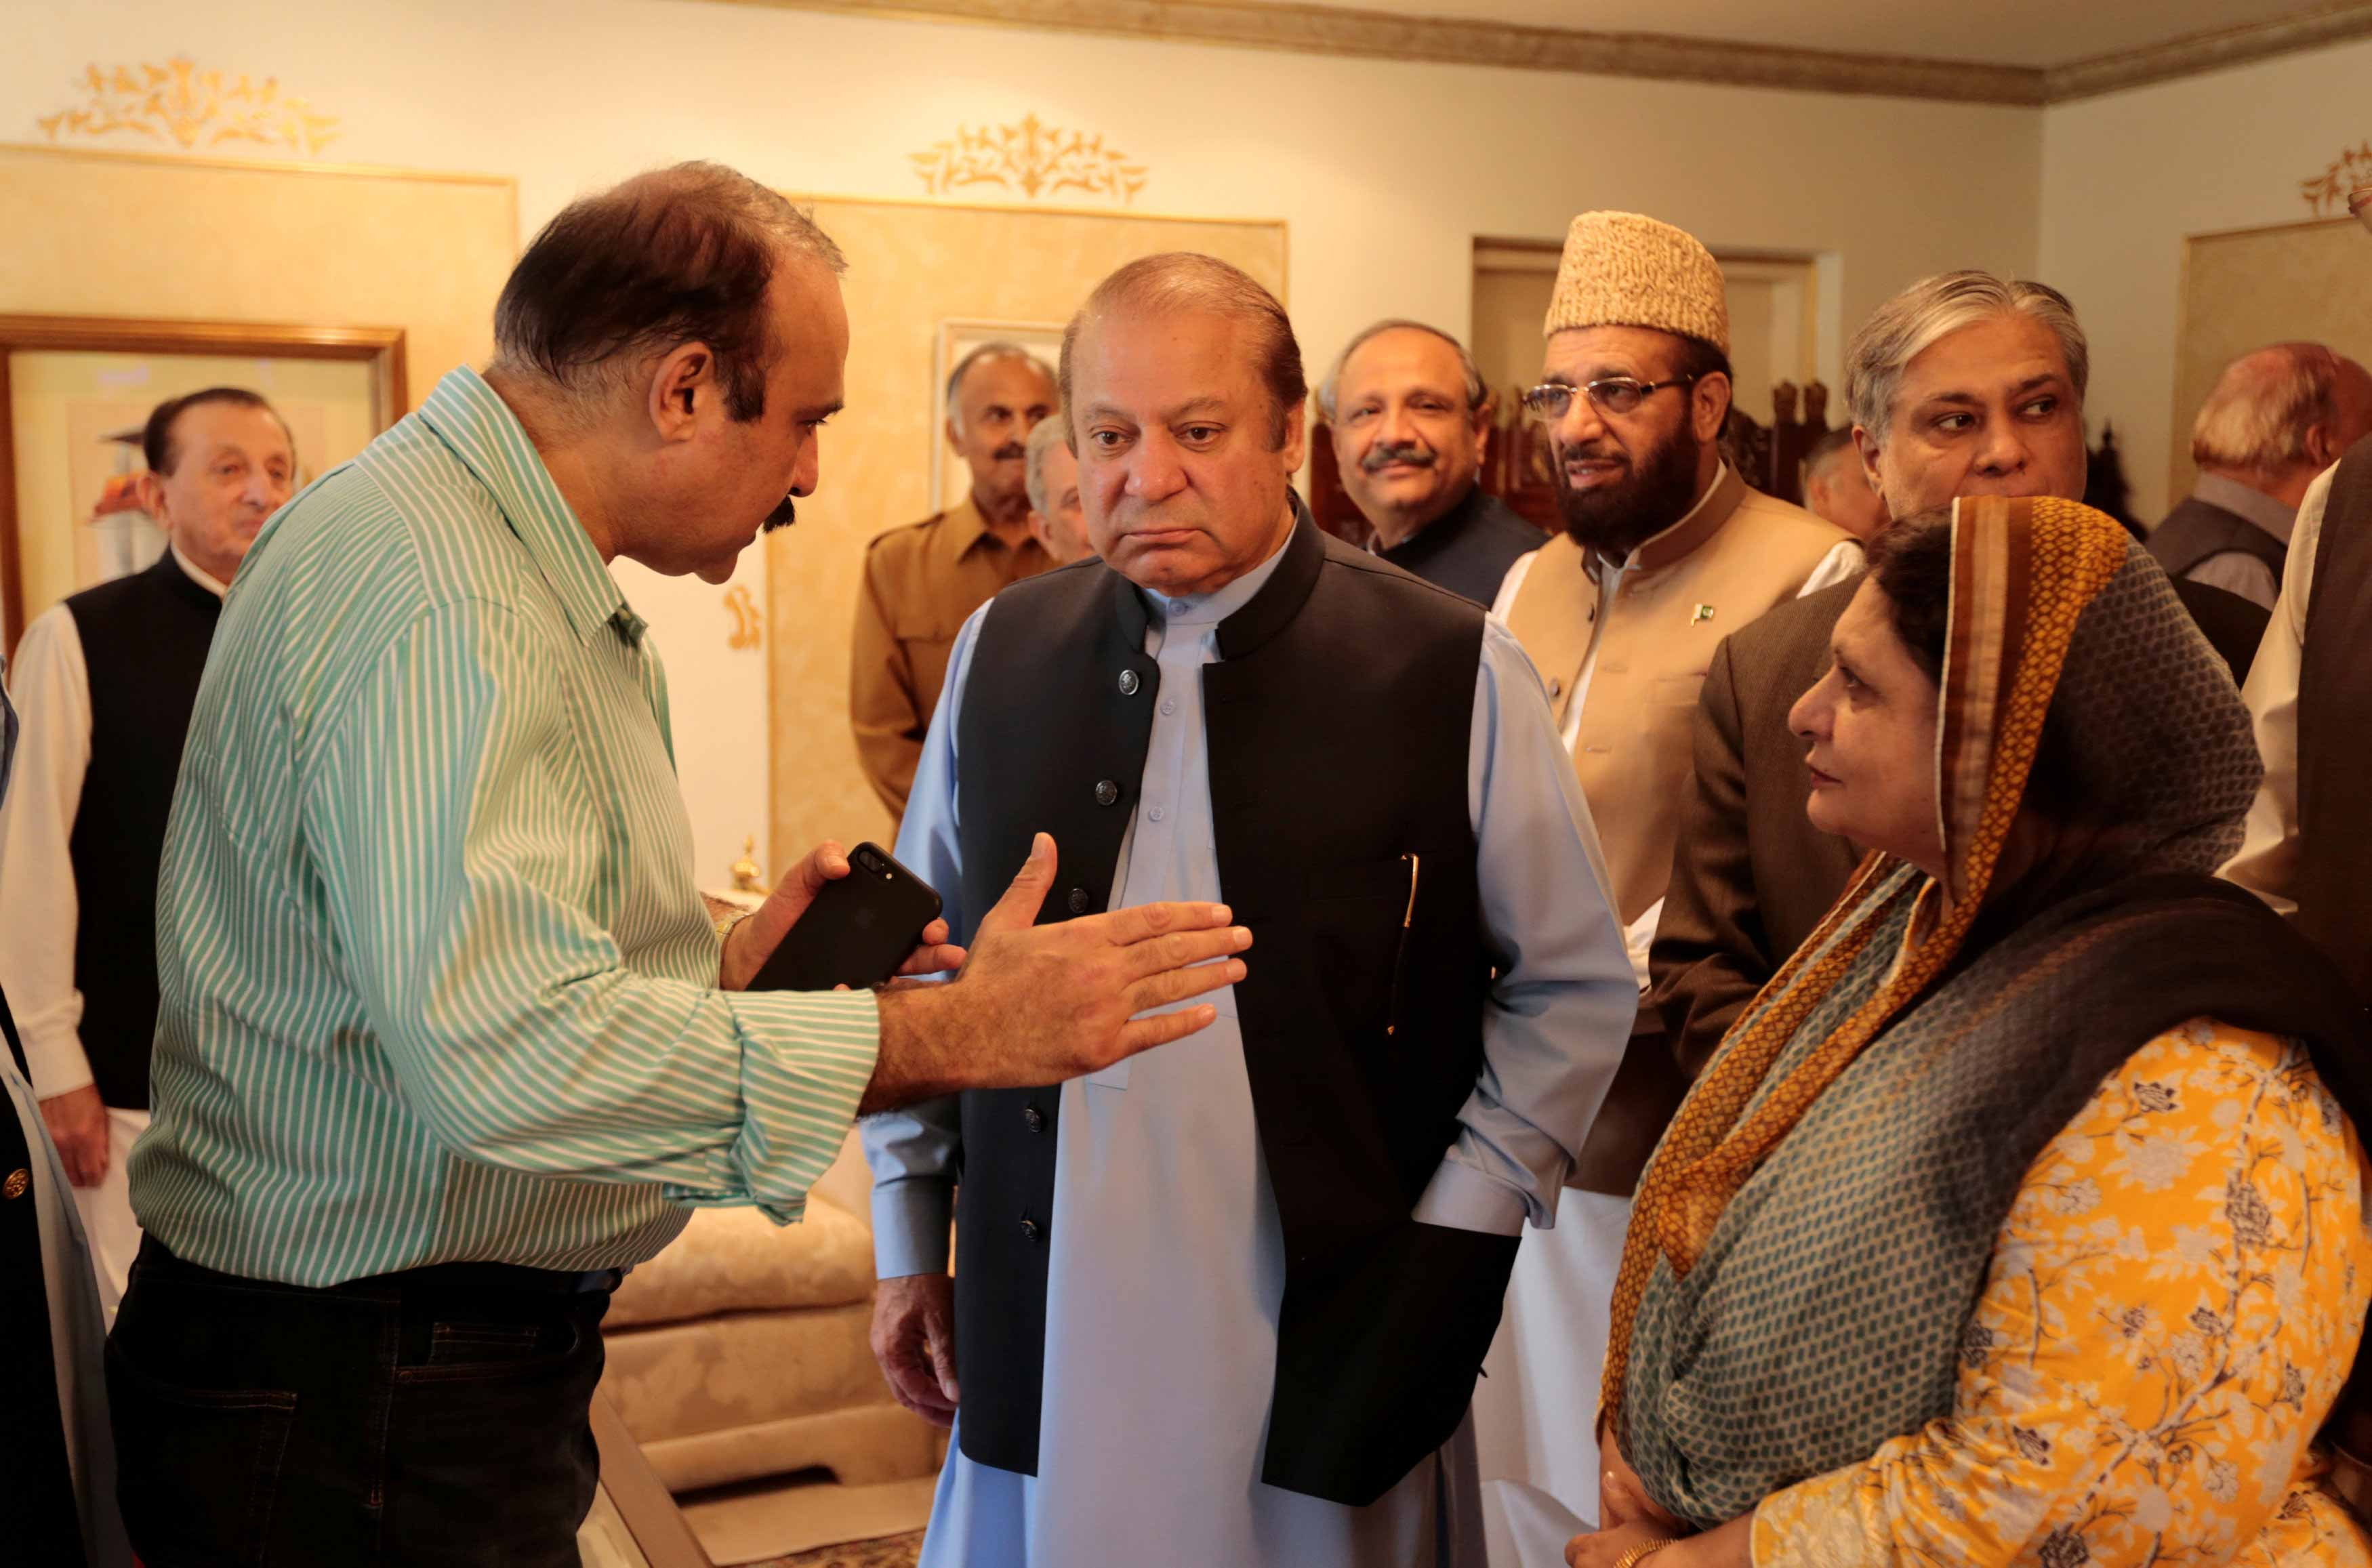 Former prime minister Nawaz Sharif speaks with members of his former cabinet as he prepares to leave Punjab House.